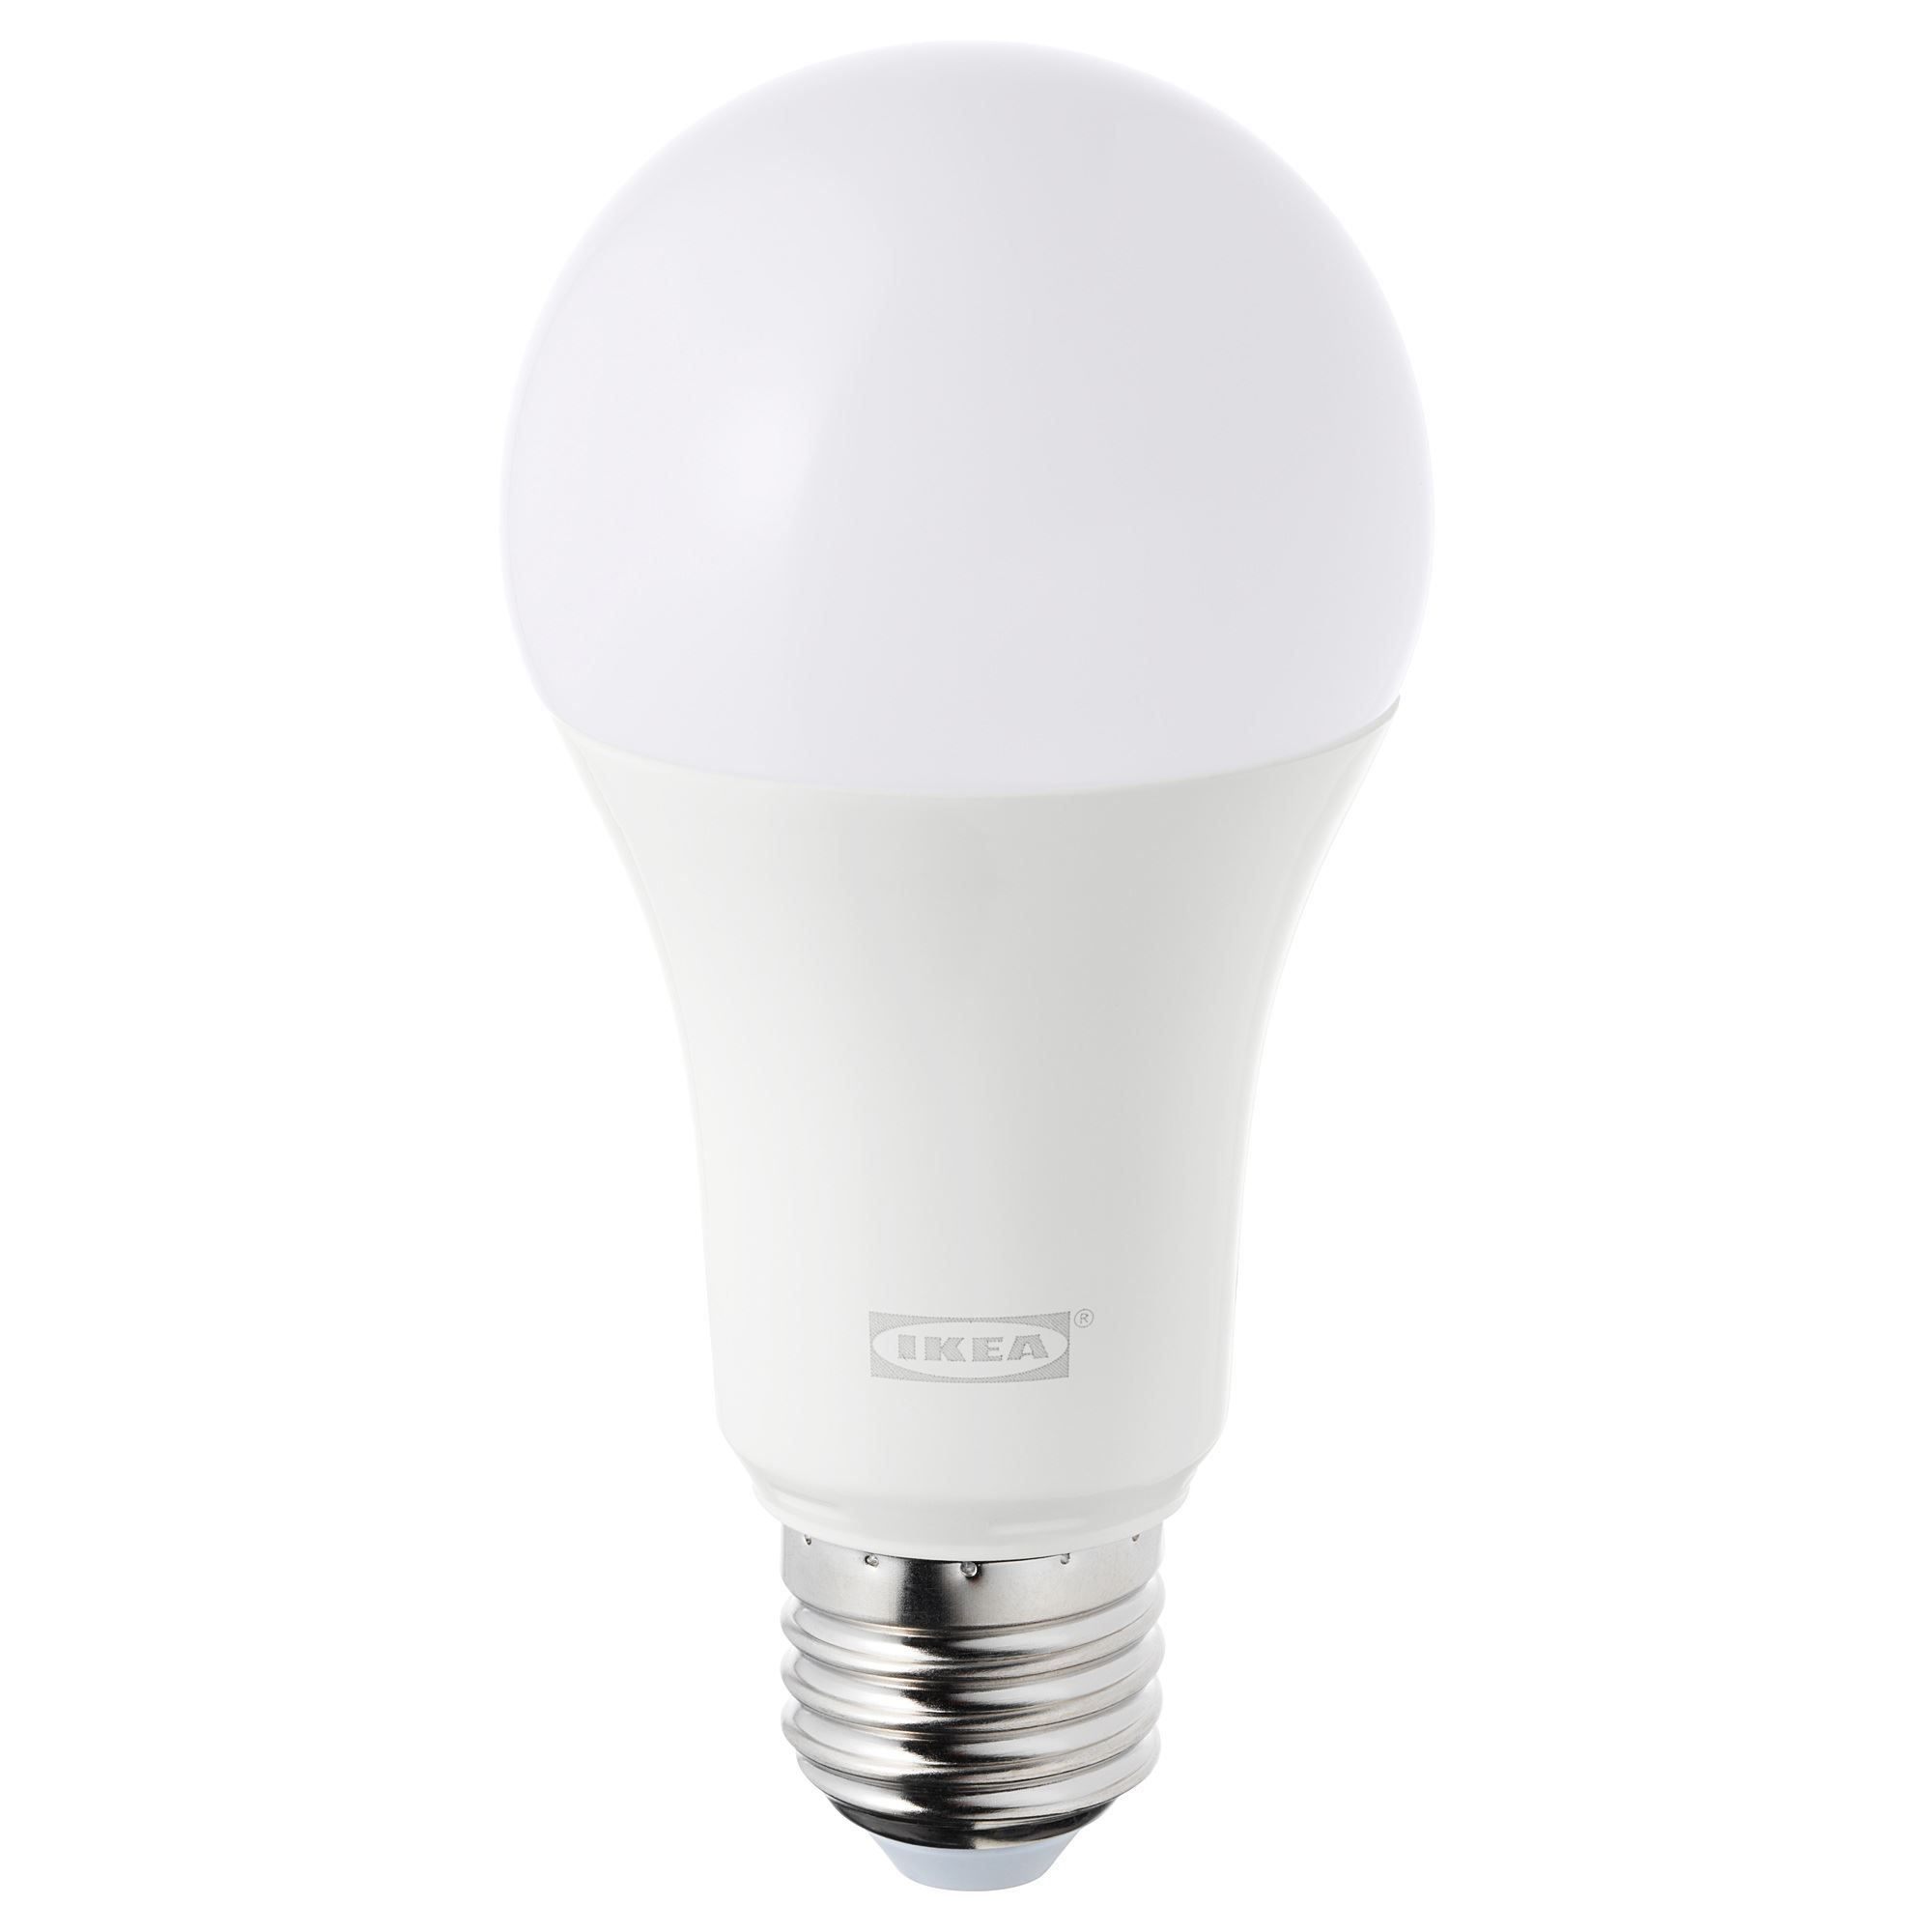 4000 Kelvin Tradfri Led Bulb E27 Light Colour Warm Light Cool White 2200